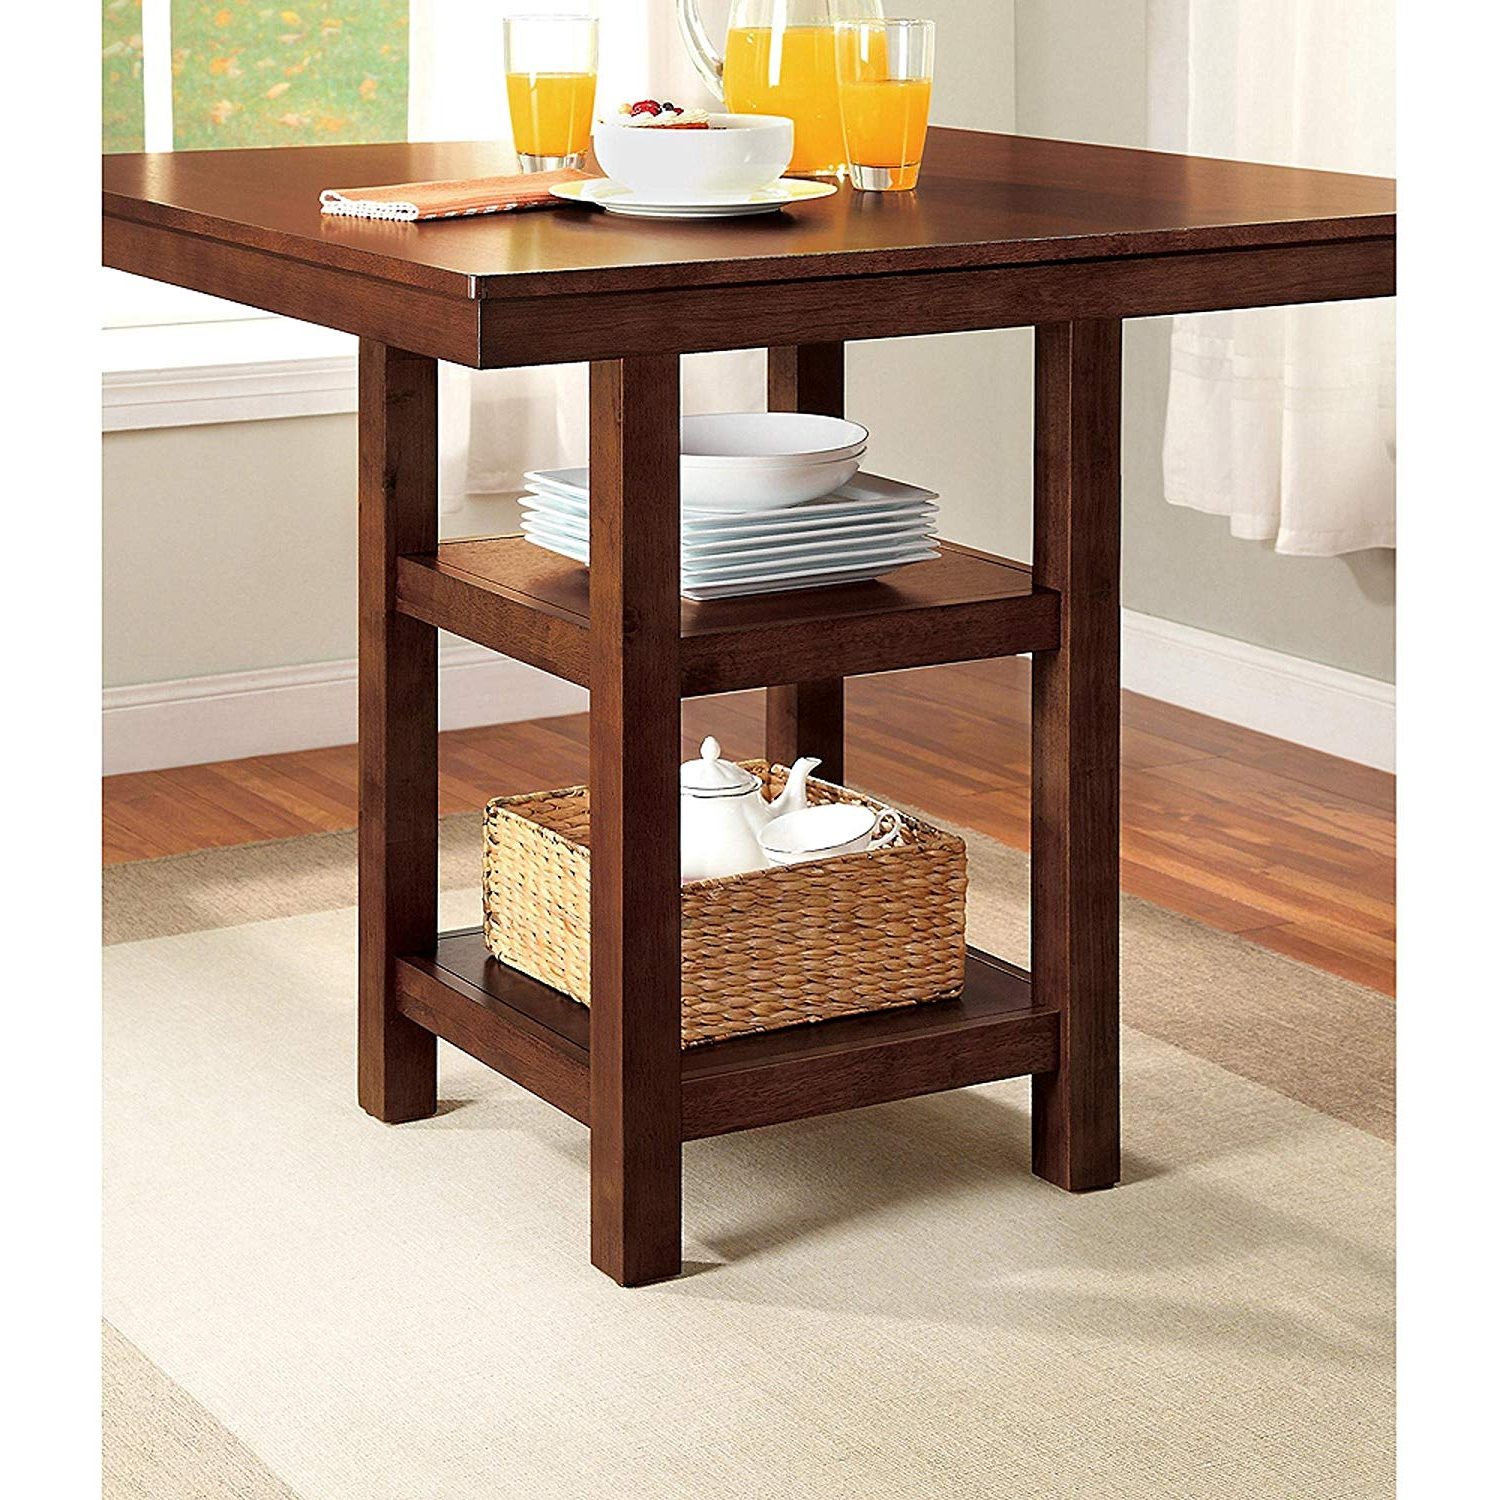 Denzel 5 Piece Counter Height Breakfast Nook Dining Sets pertaining to Preferred Amazon - 5-Piece Dalton Park Counter Height Dining Set, Mocha